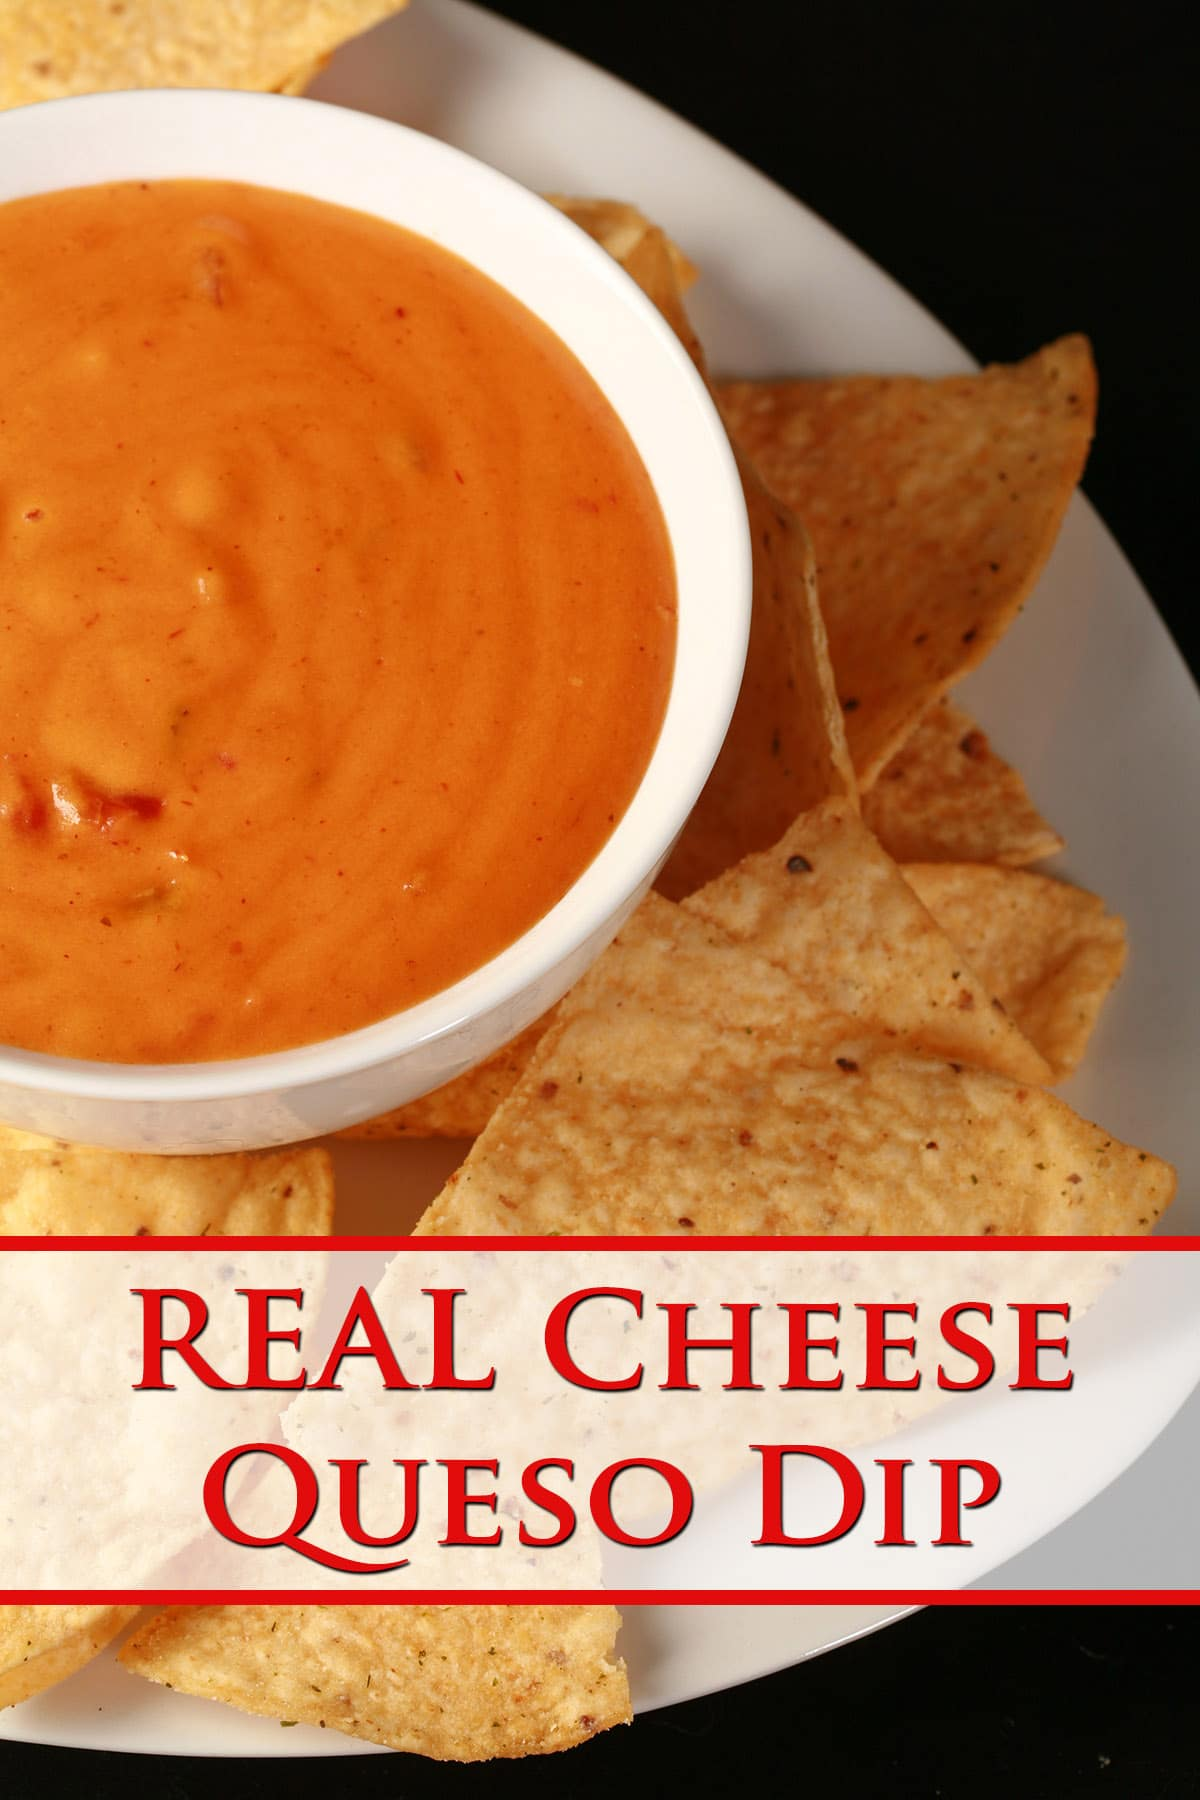 A bowl of real cheese queso dip, surrounded by tortilla chips.